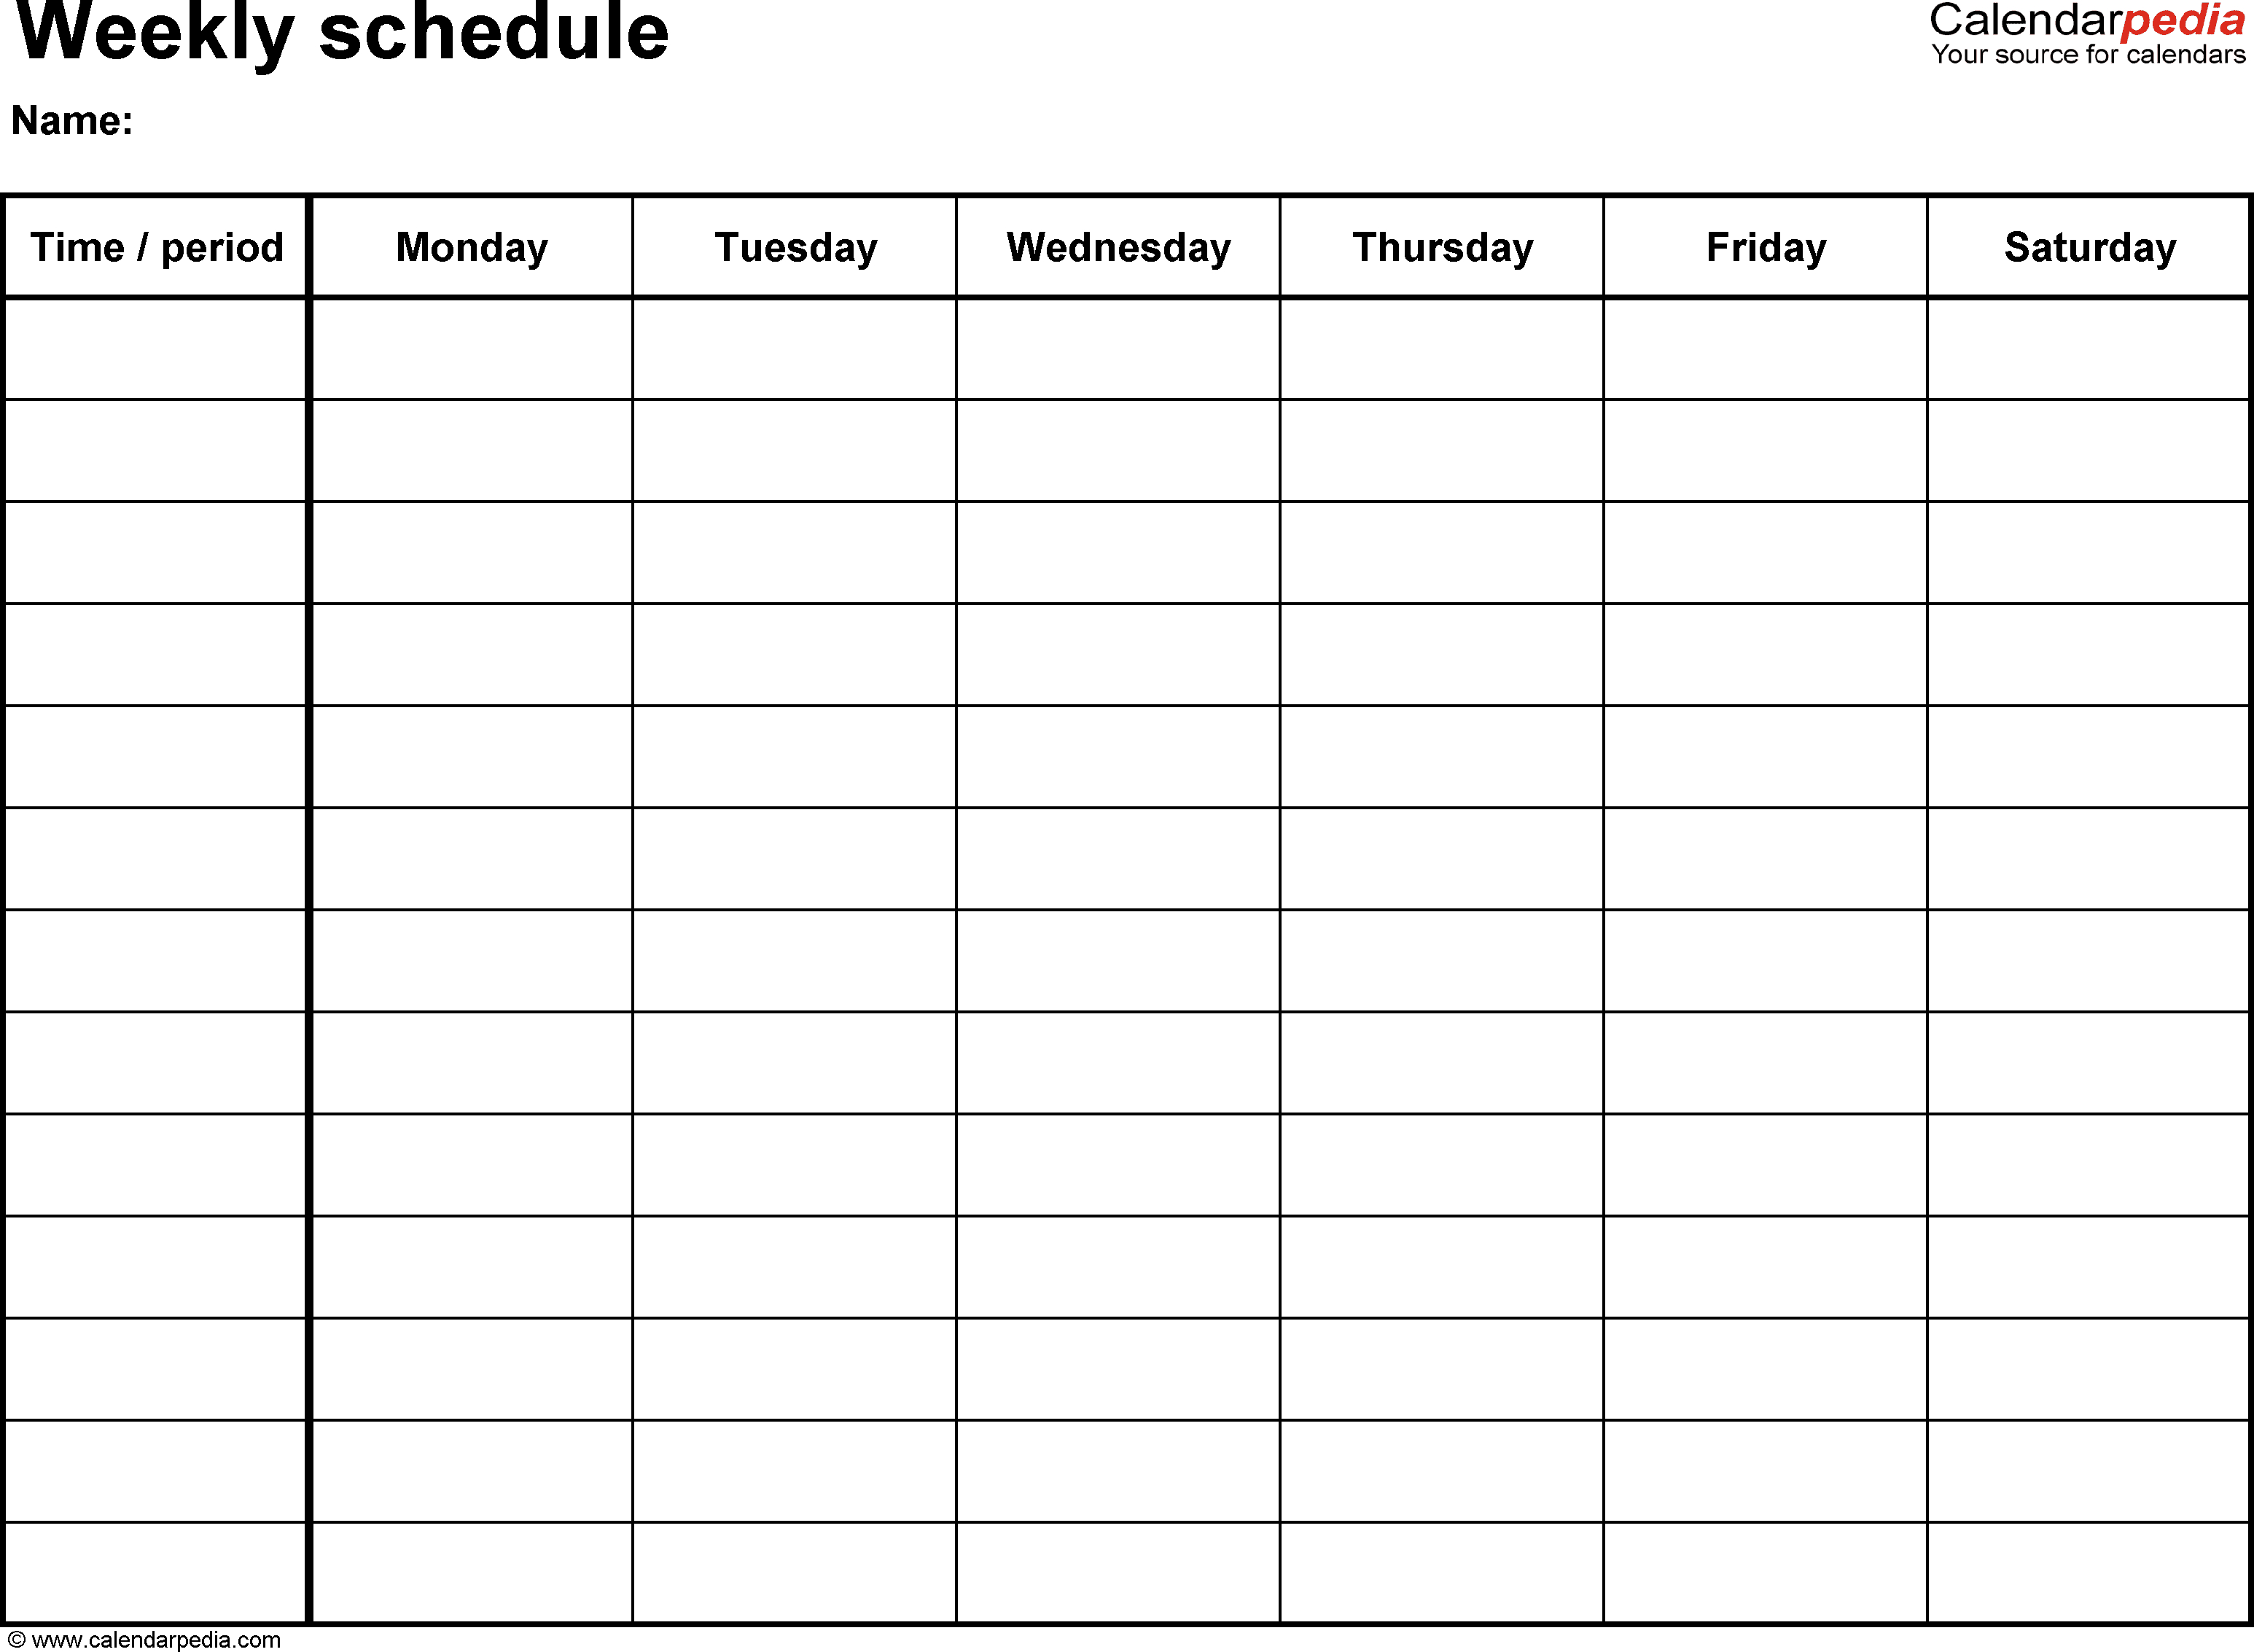 Free Weekly Schedule Templates For Excel   18 Templates Within Employee Weekly Schedule Template Excel